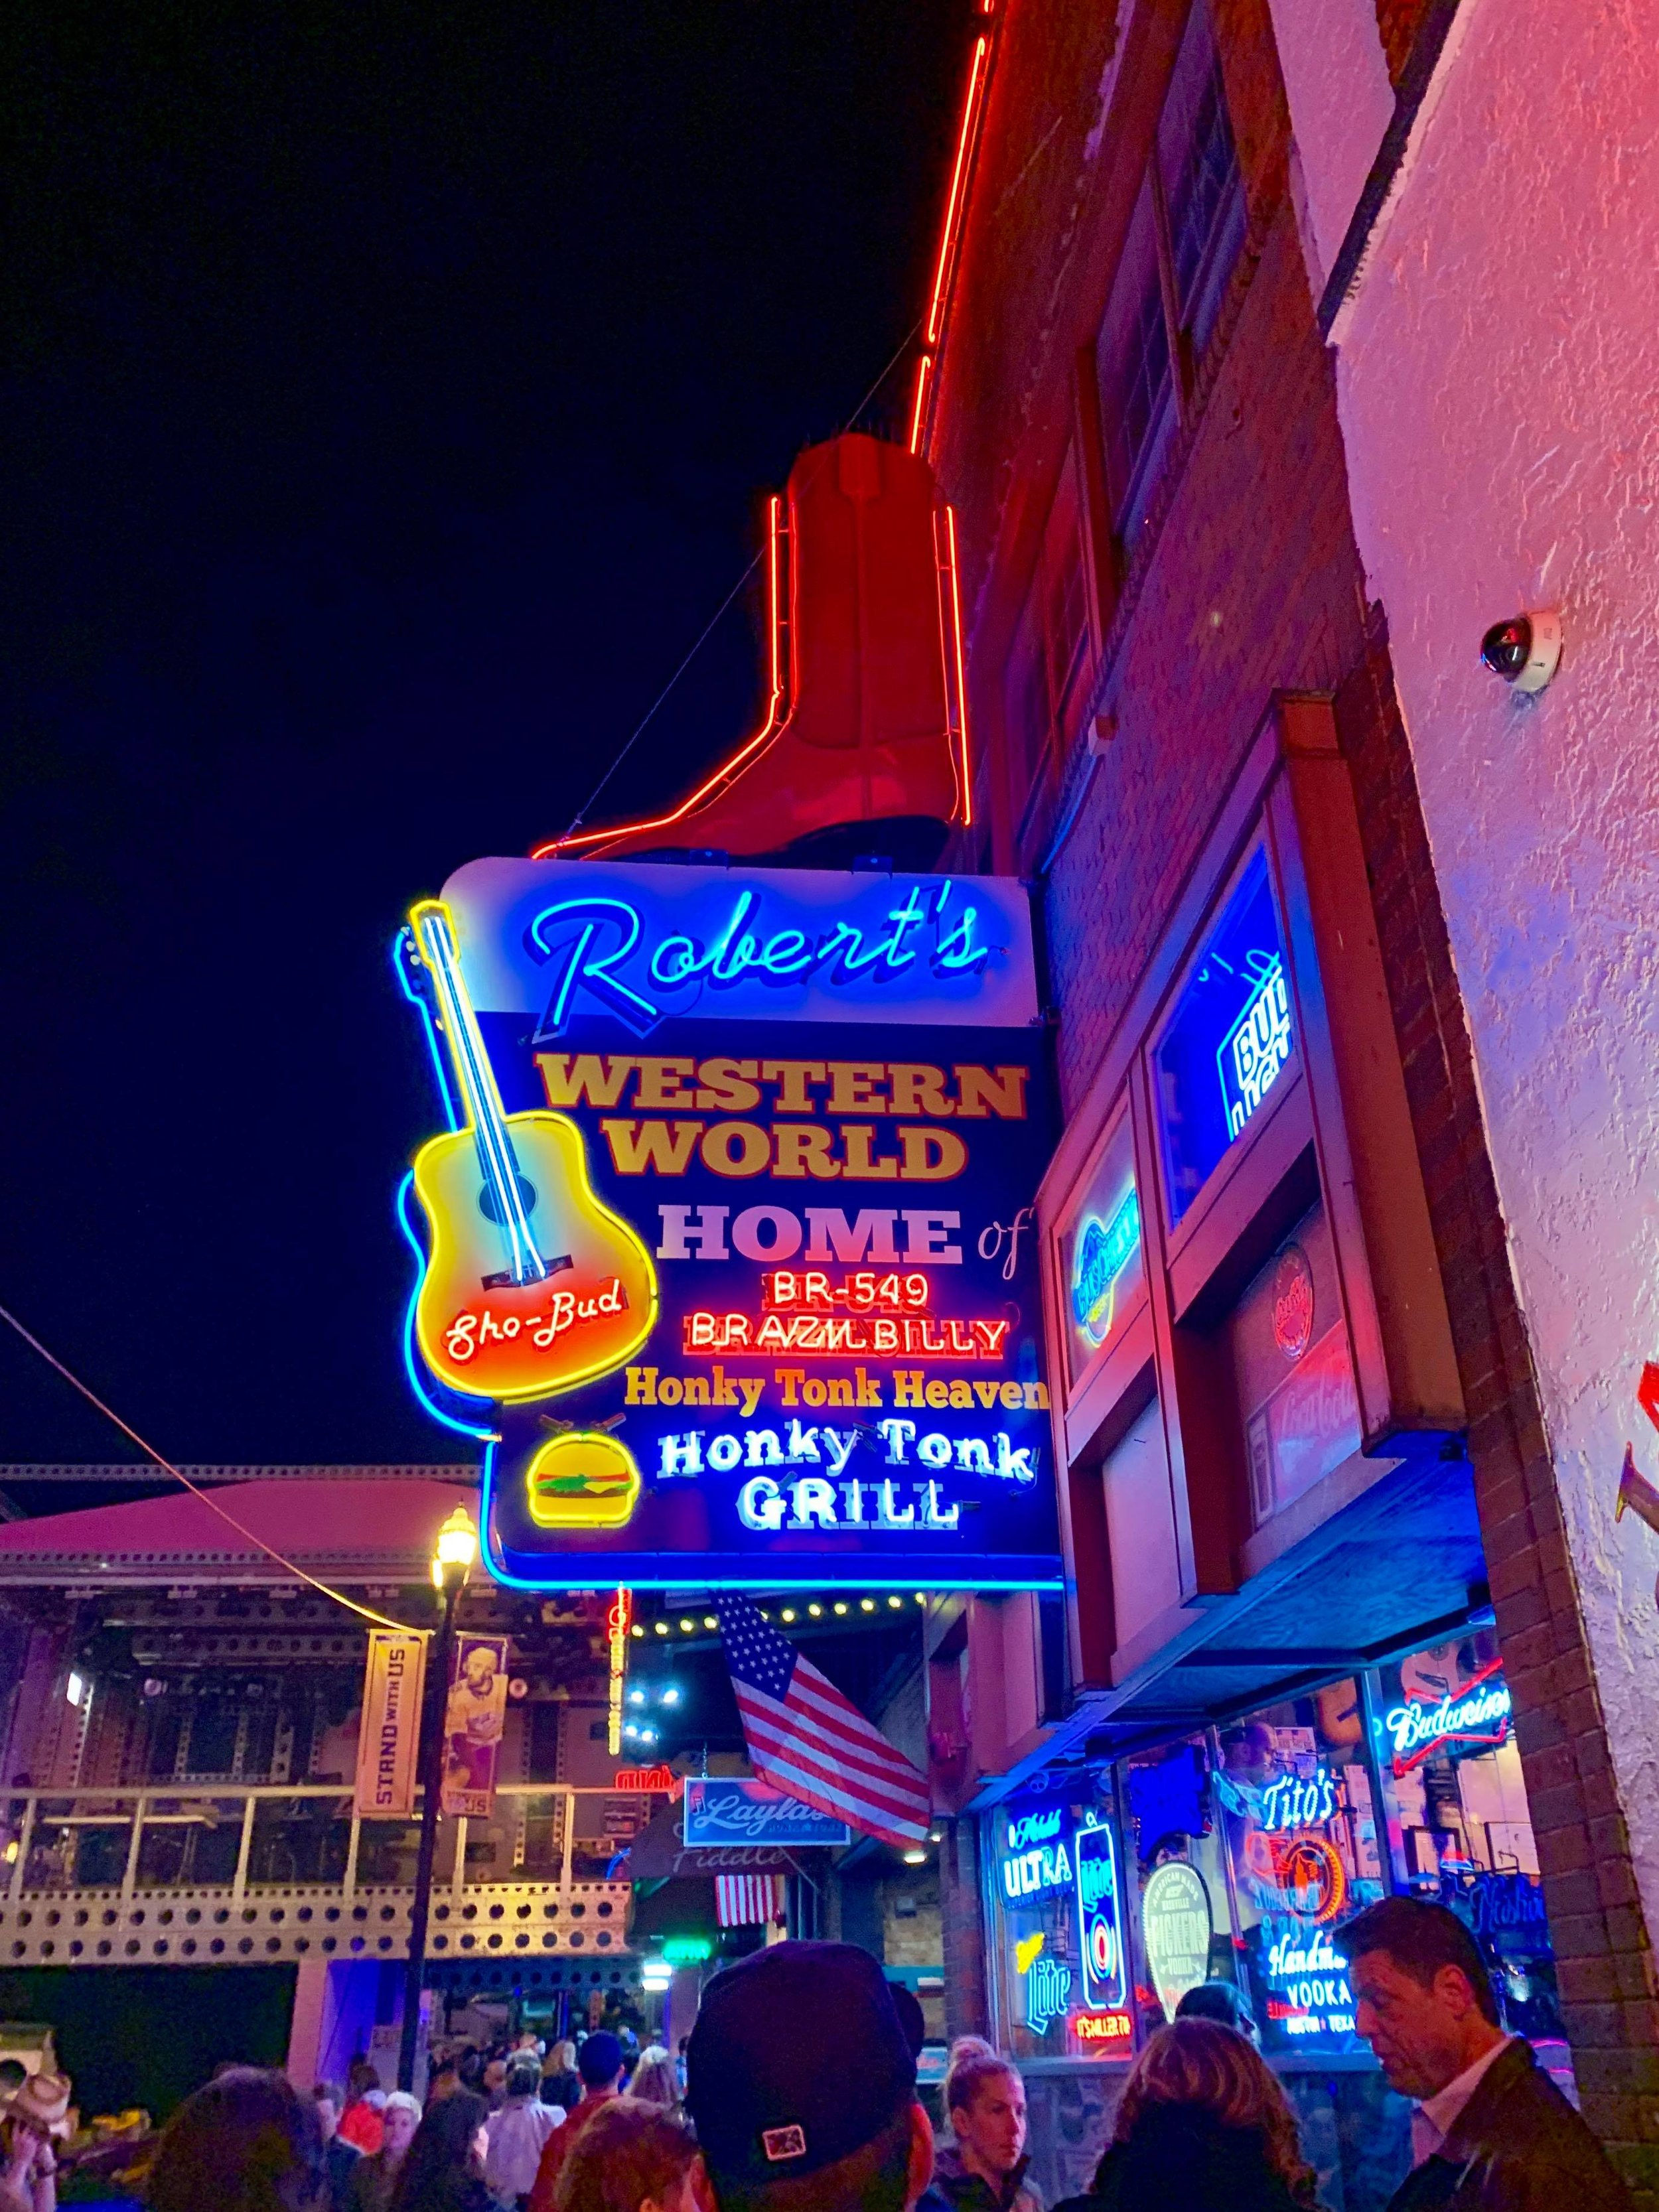 - Robert's Western World is one of the staples along lower Broadway for solid drinks and a great bite to eat. Open during the day as a boot store, at night it features live performances and serves up delicious morsels of food to accompany your beer at the Honky Tonk Grill.